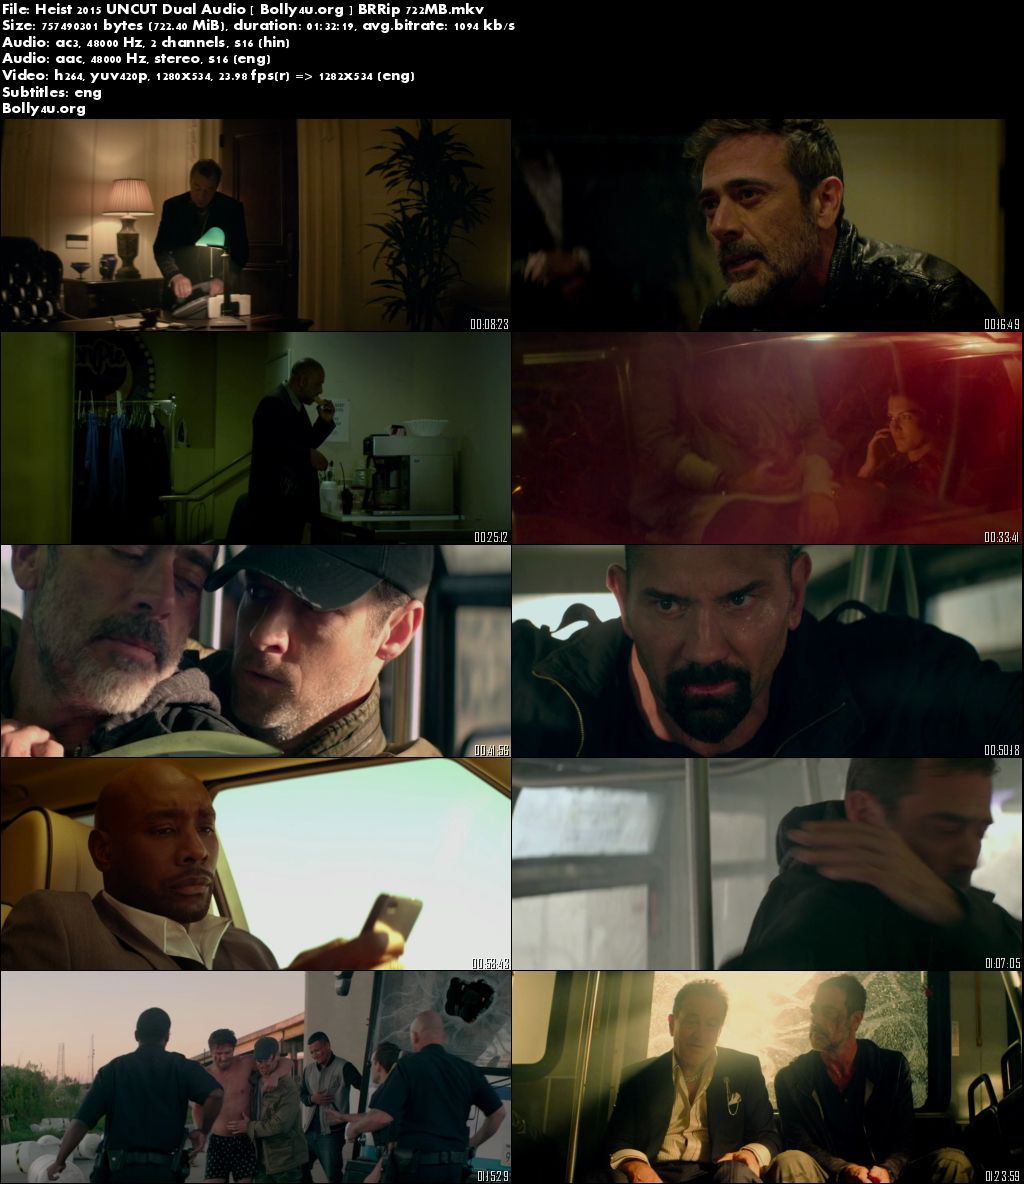 Heist 2015 BRRip UNCUT Dual Audio 700Mb Download